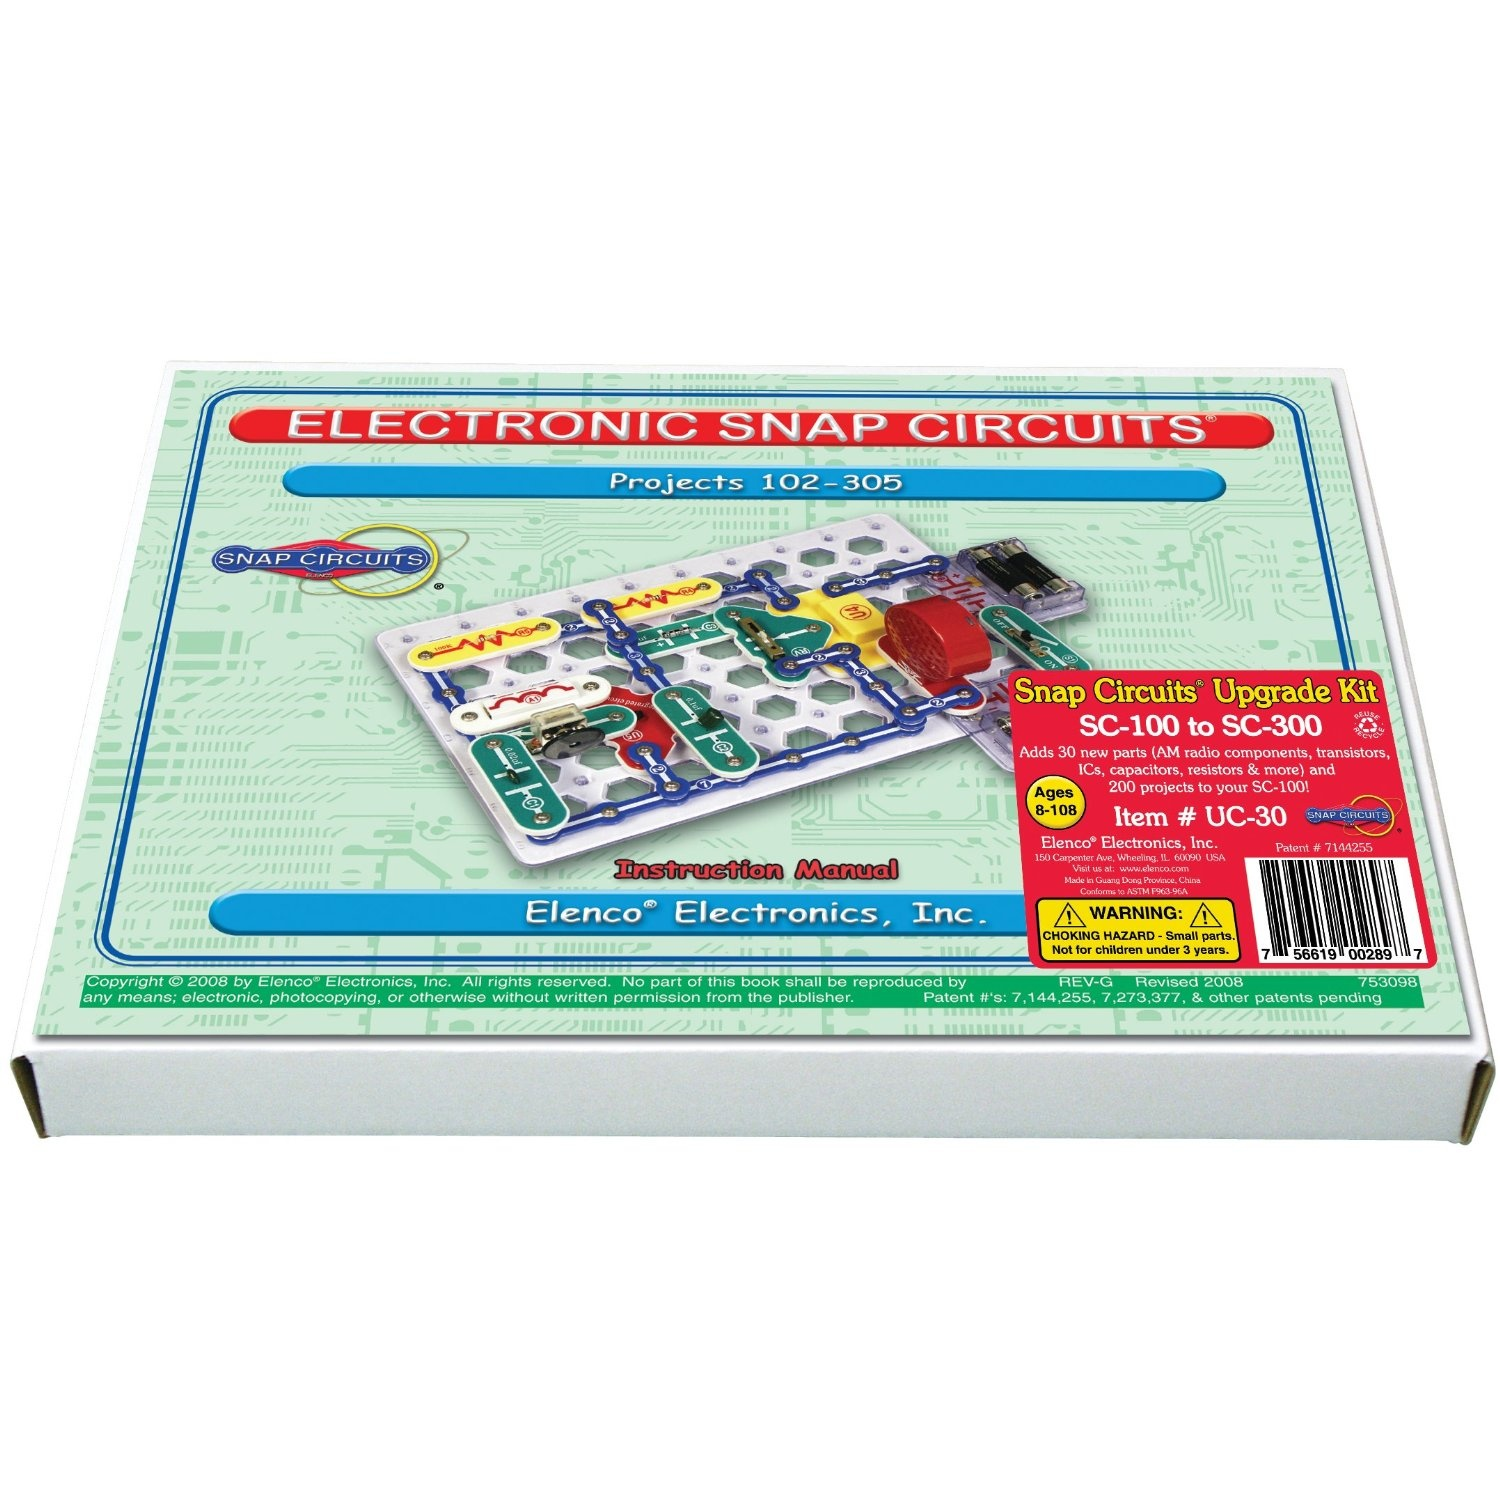 Snap Circuits Toys Buy Online From Elenco Electronic Set